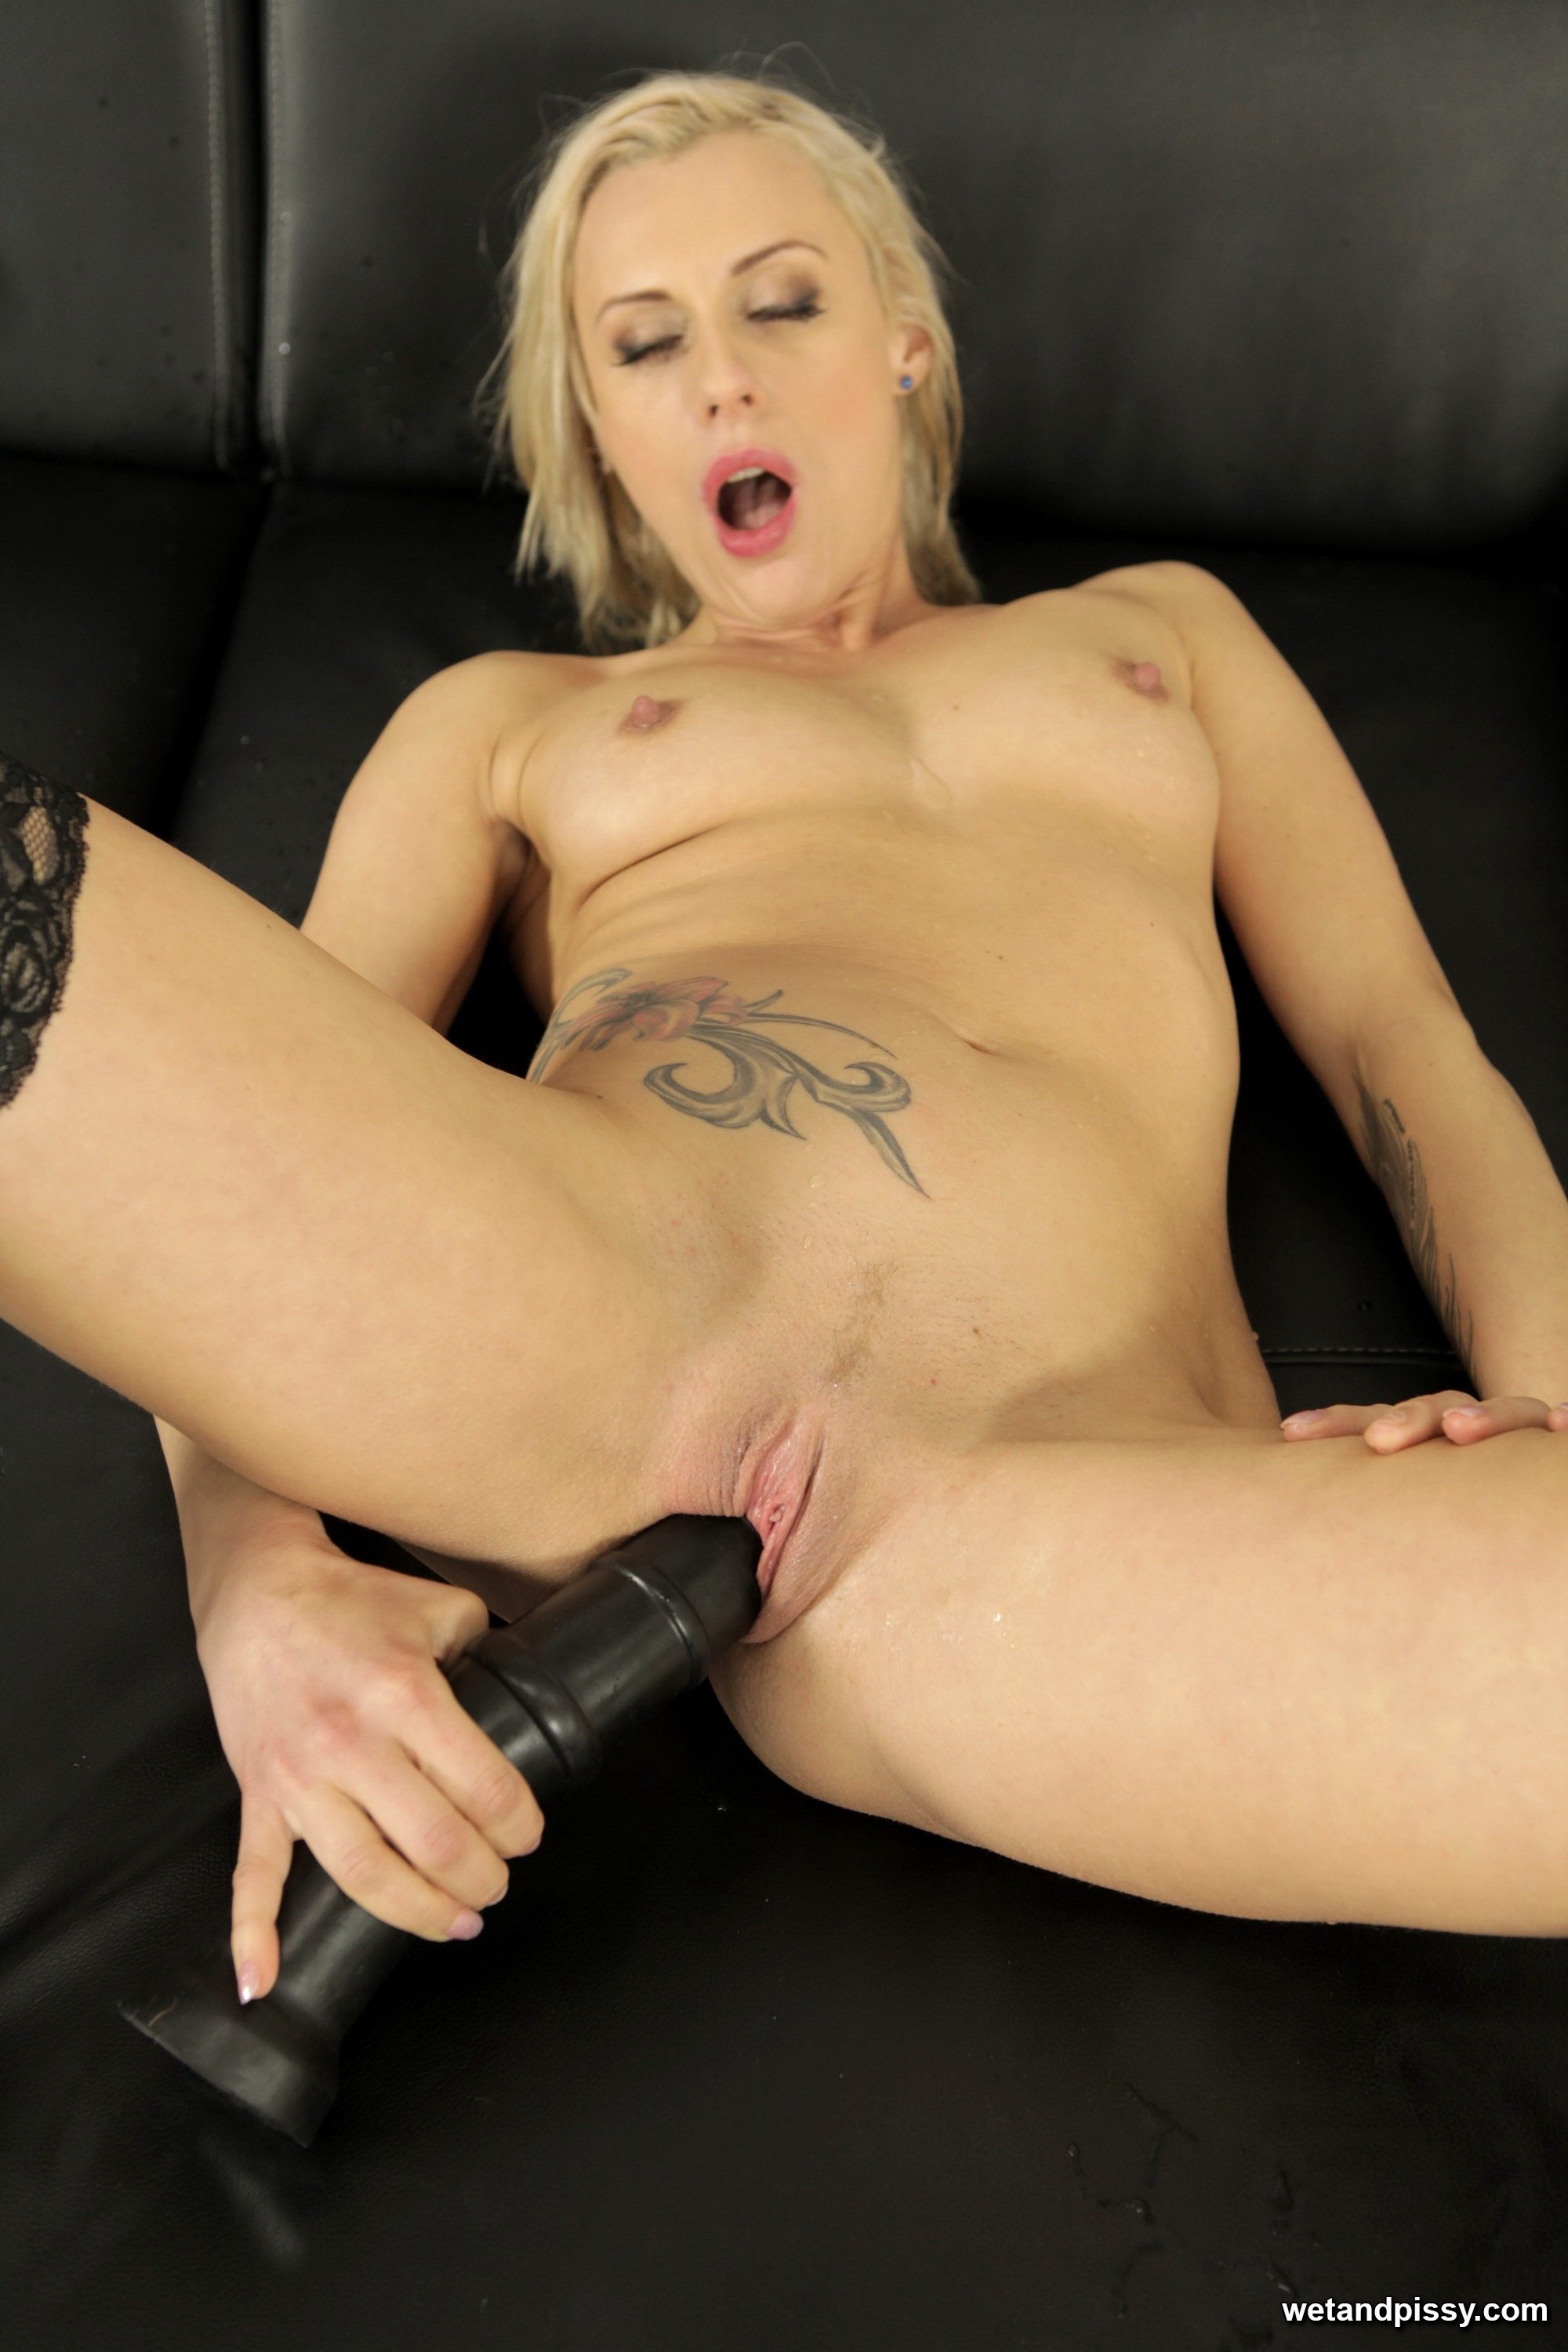 Hot blonde has her turn at riding cock with this lucky guy 1